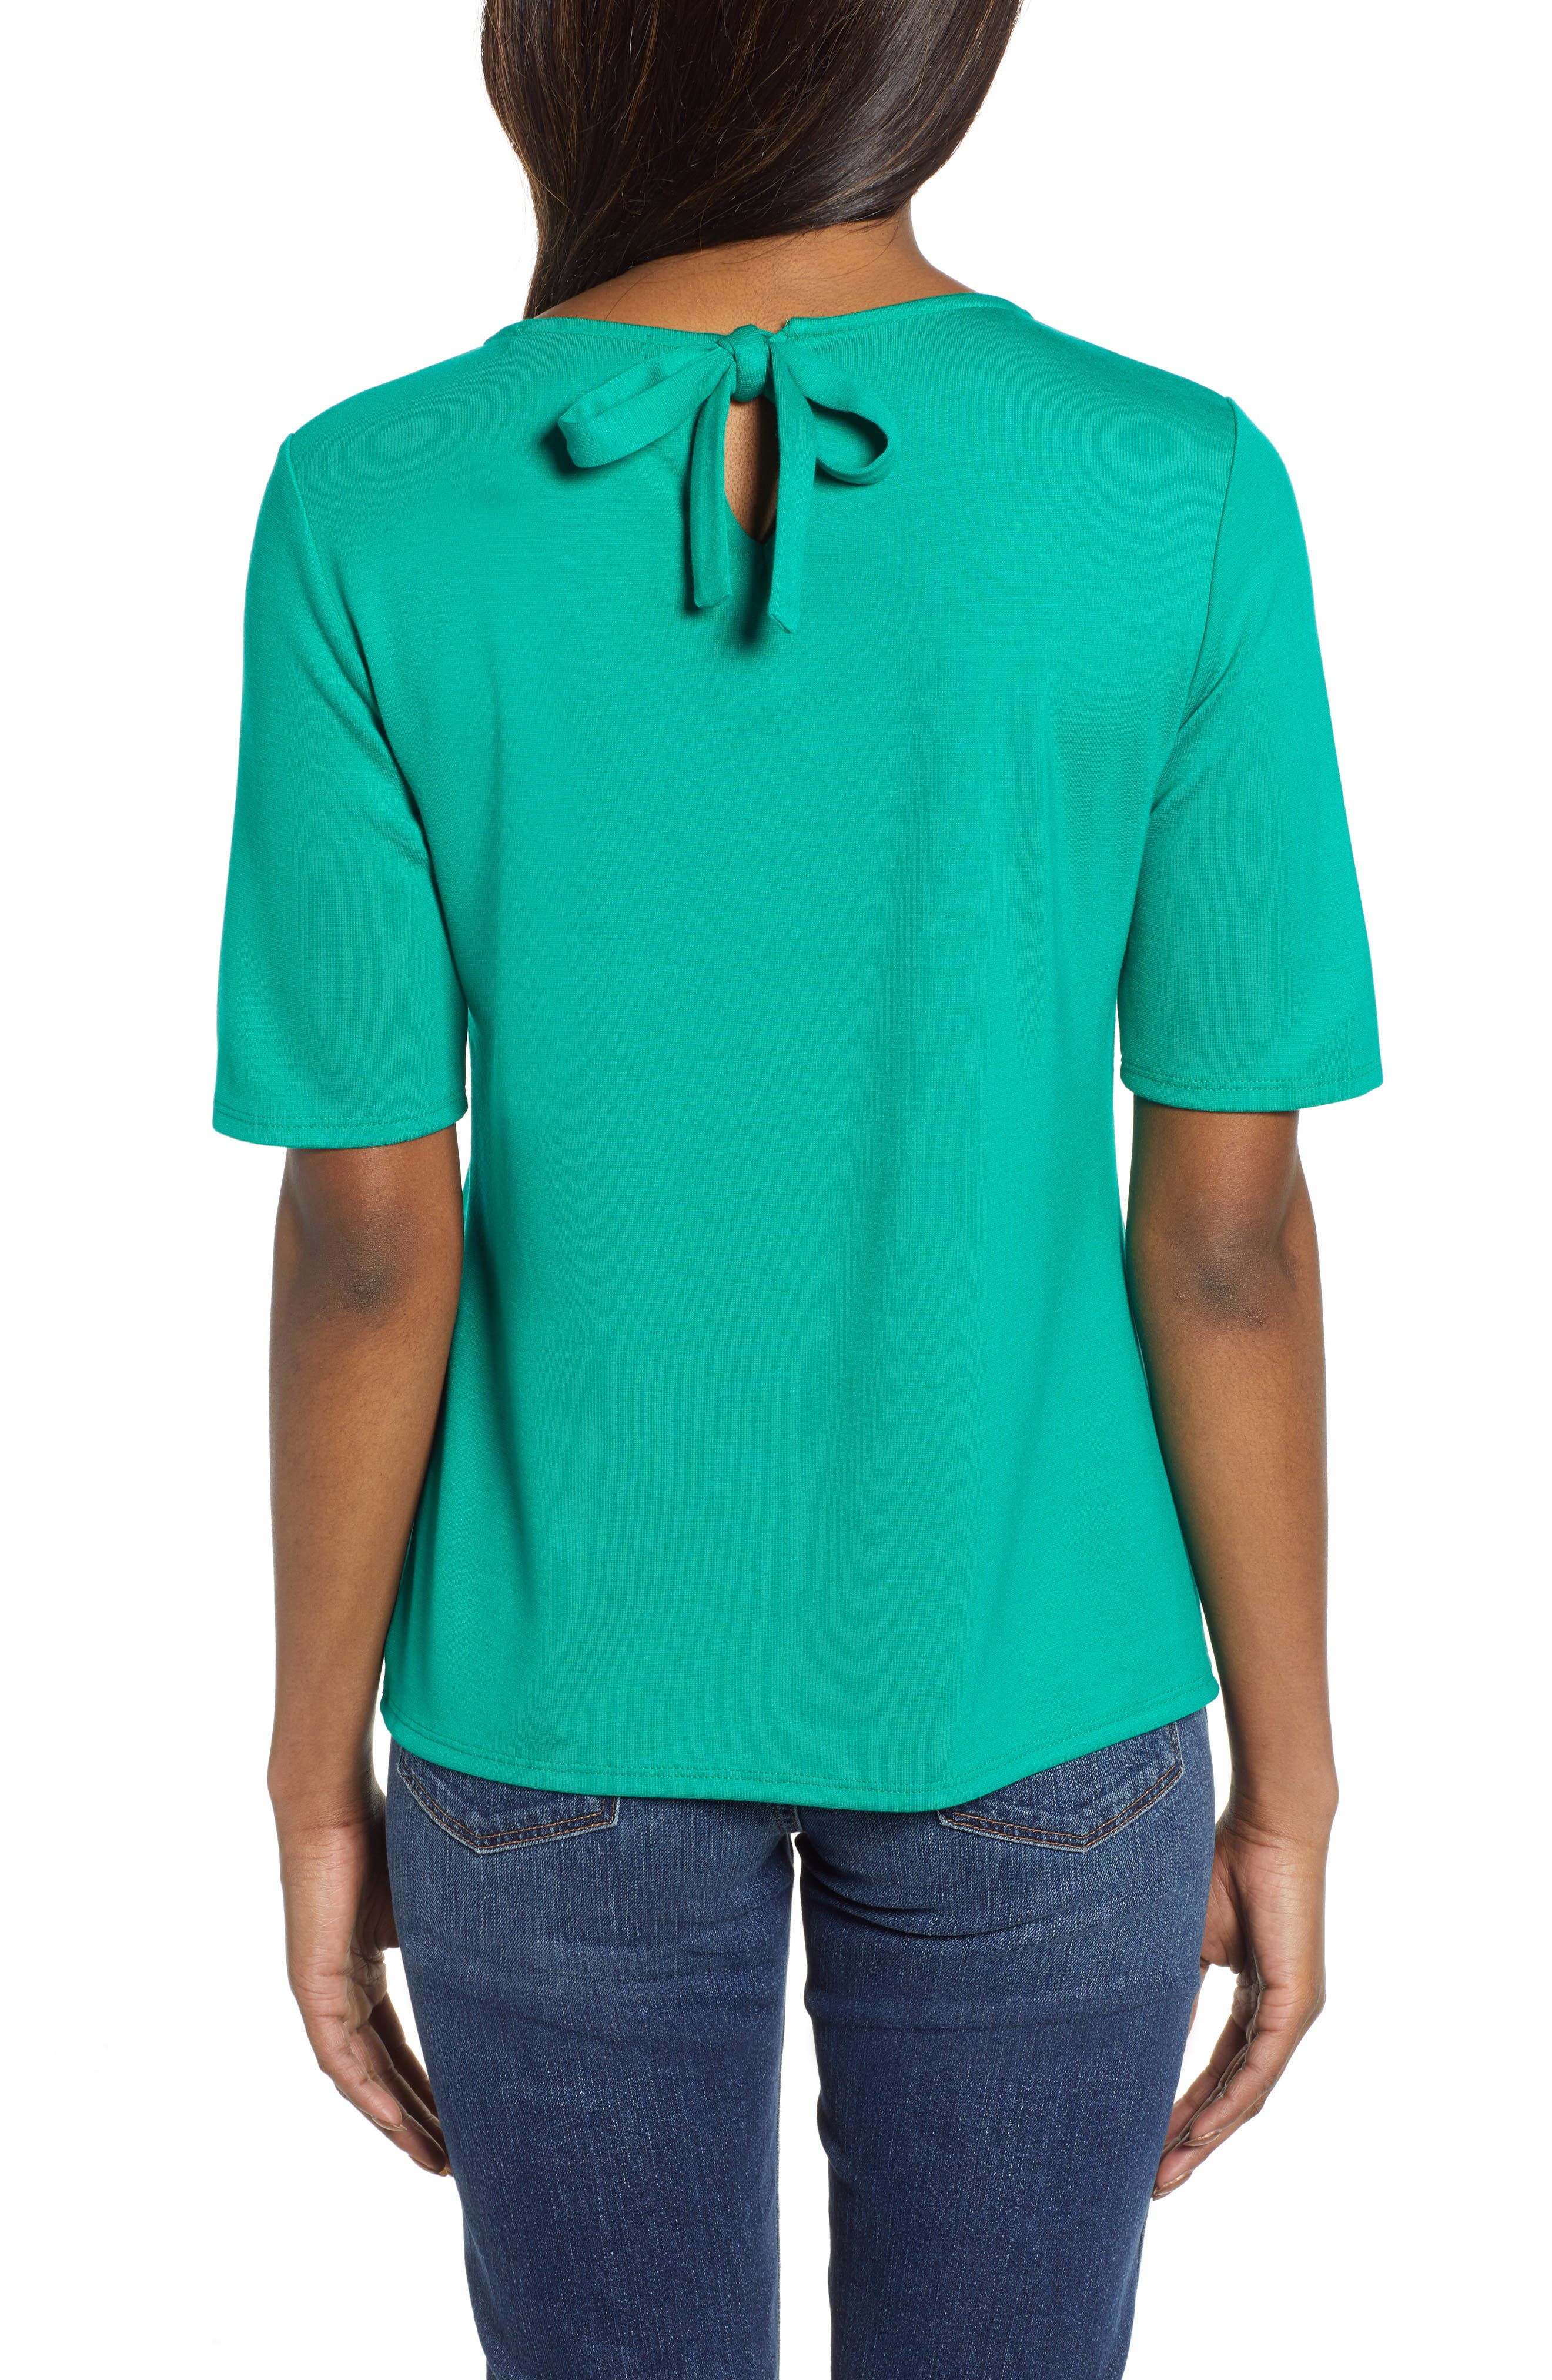 GIBSON, x International Women's Day Thamarr Keyhole Tie Back Ponte Top, Alternate thumbnail 2, color, GREEN